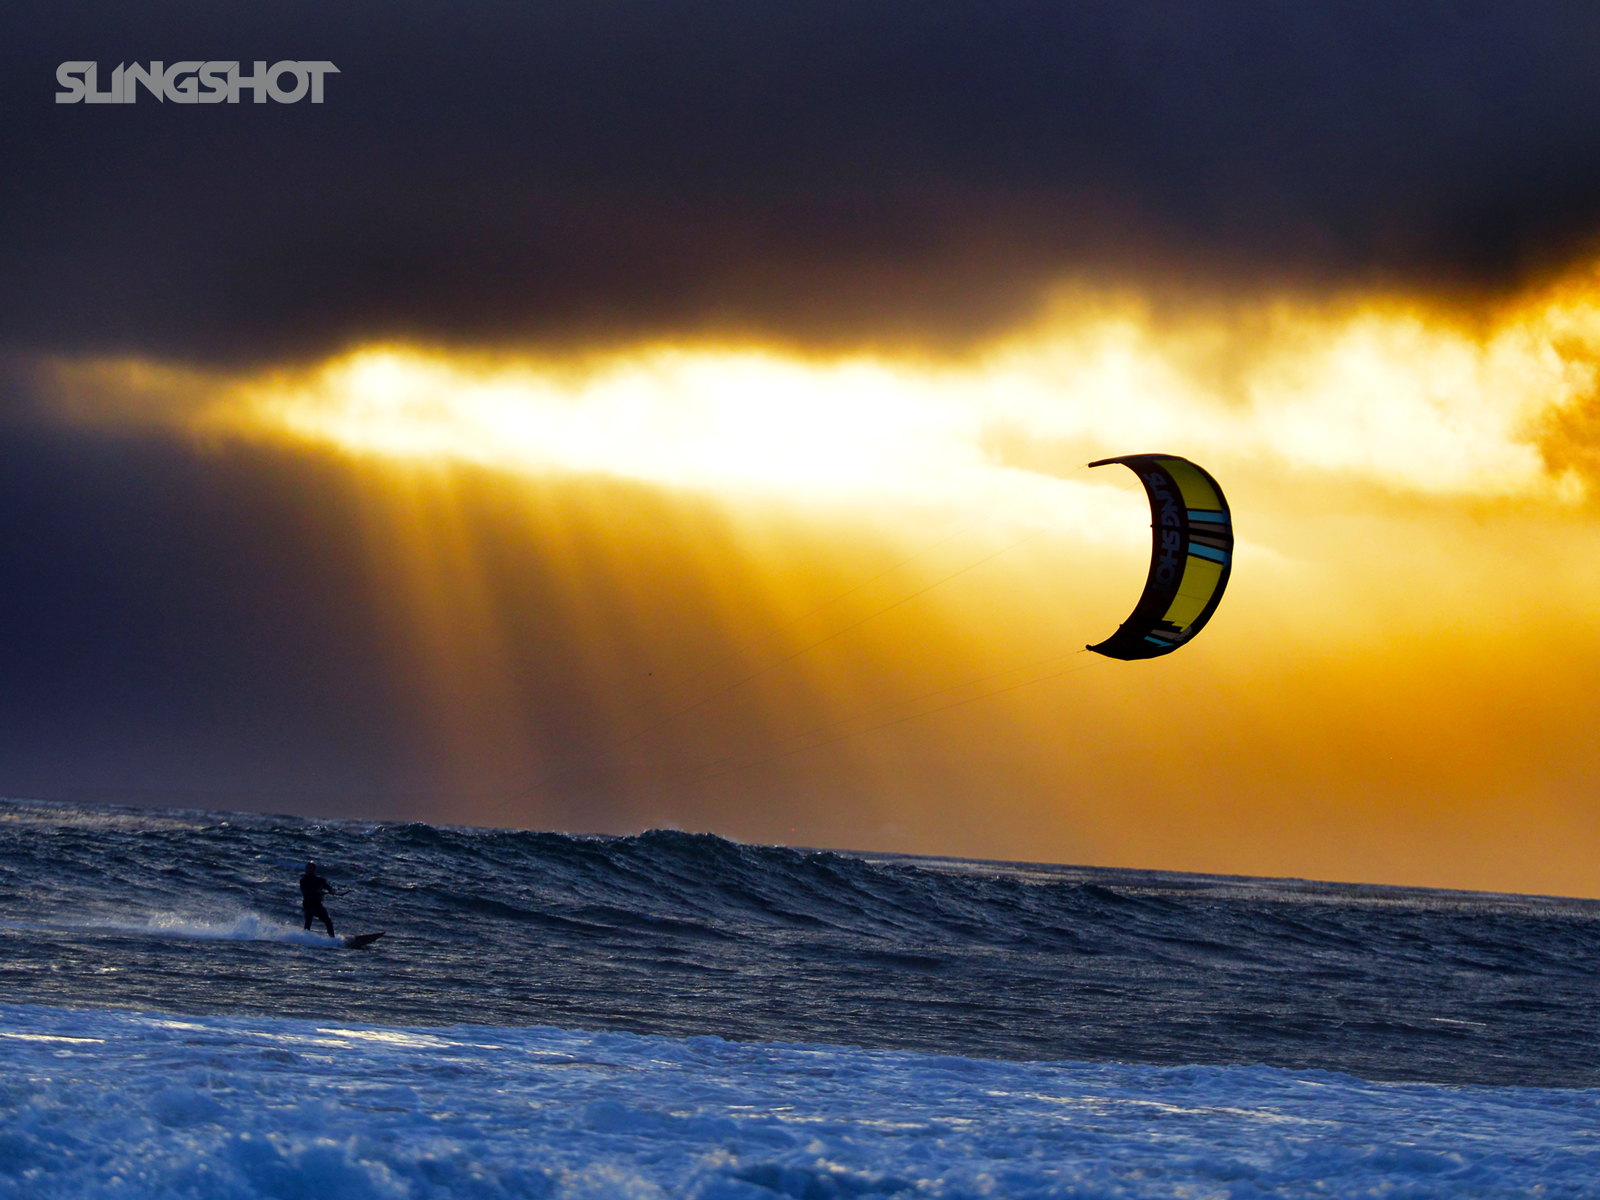 kitesurf wallpaper image - A kitesurfer cruising at sunset with his 2016 Slingshot Wave SST kite. - in resolution: Standard 4:3 1600 X 1200